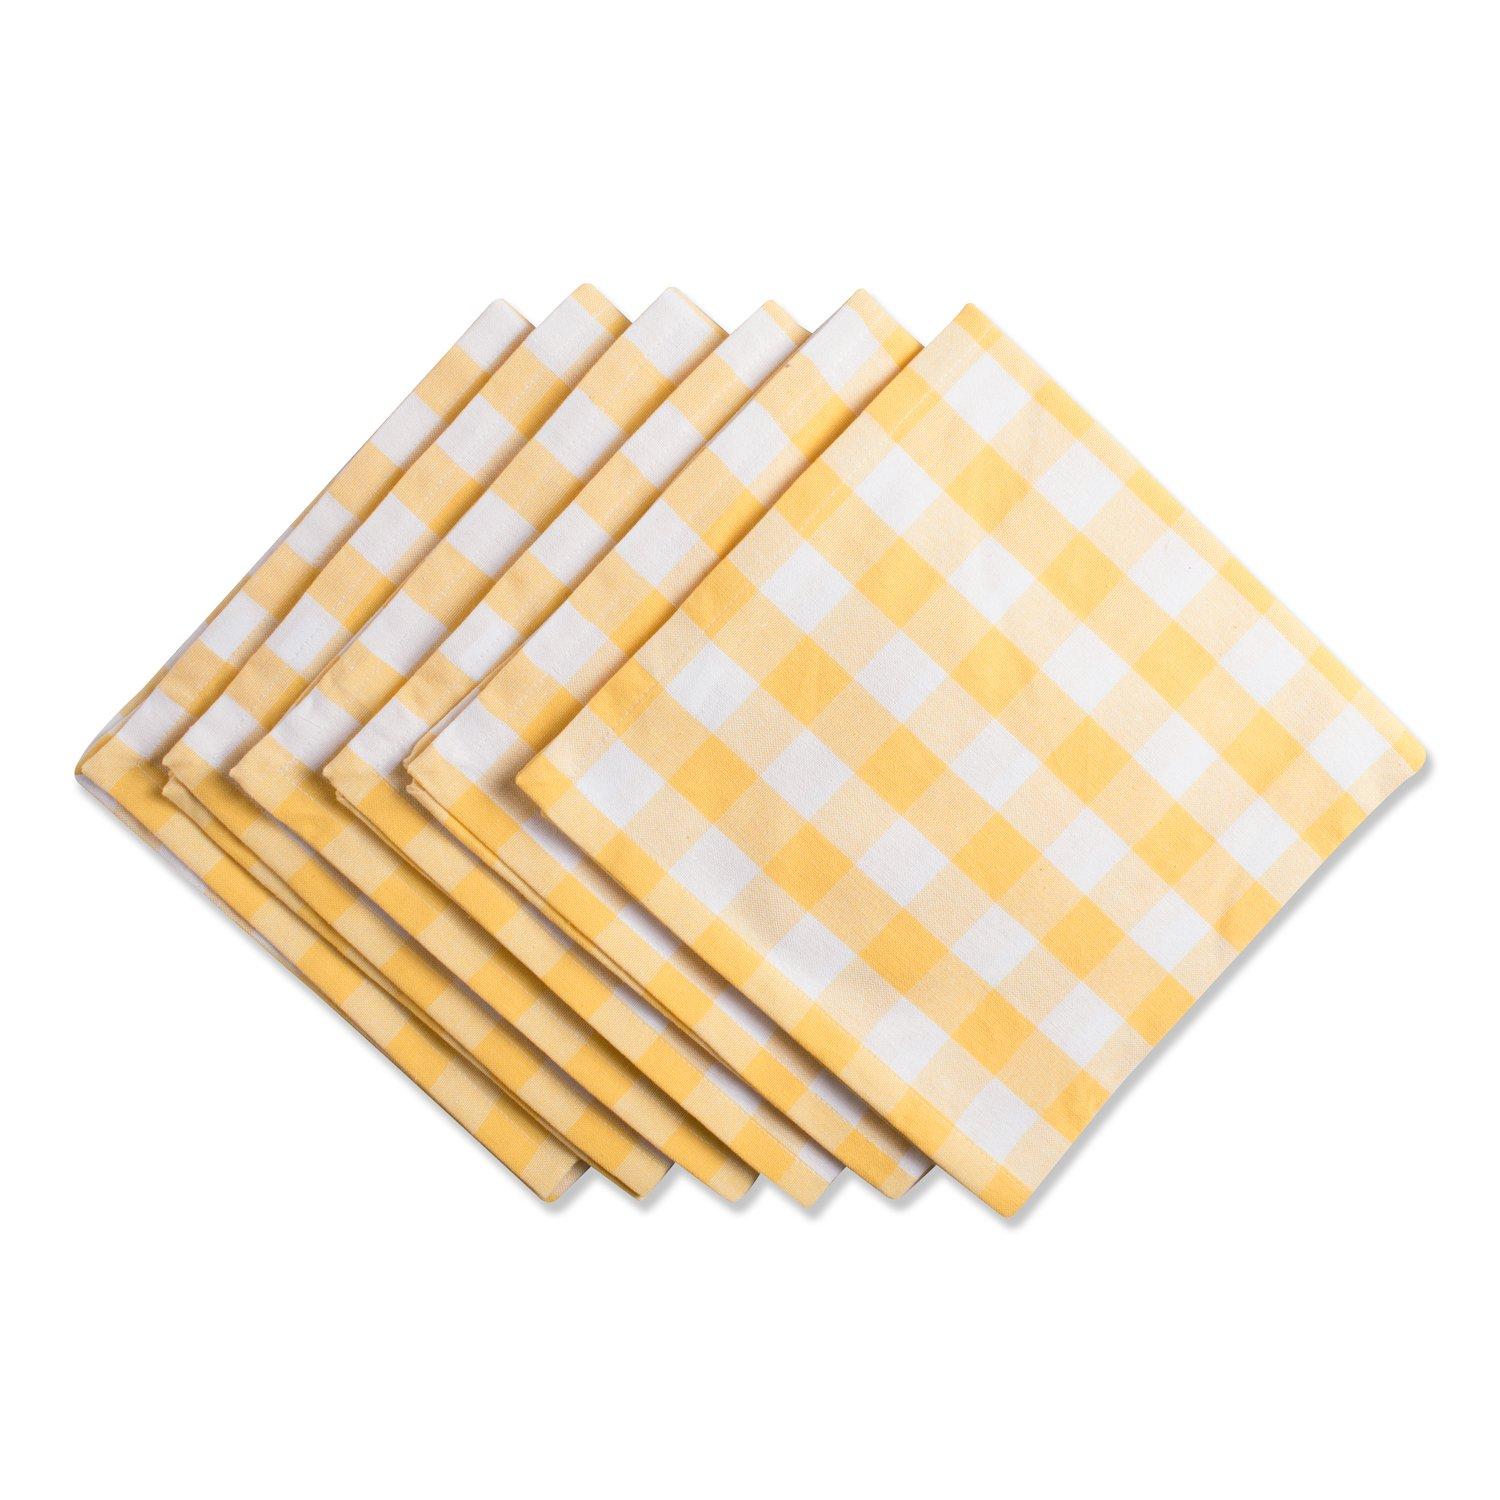 DII Oversized 20x20 Cotton Napkin, Pack of 6, Yellow & White Check - Perfect for Spring, Fall, Thanksgiving, Dinner Parties, Weddings, Showers or Everyday Use